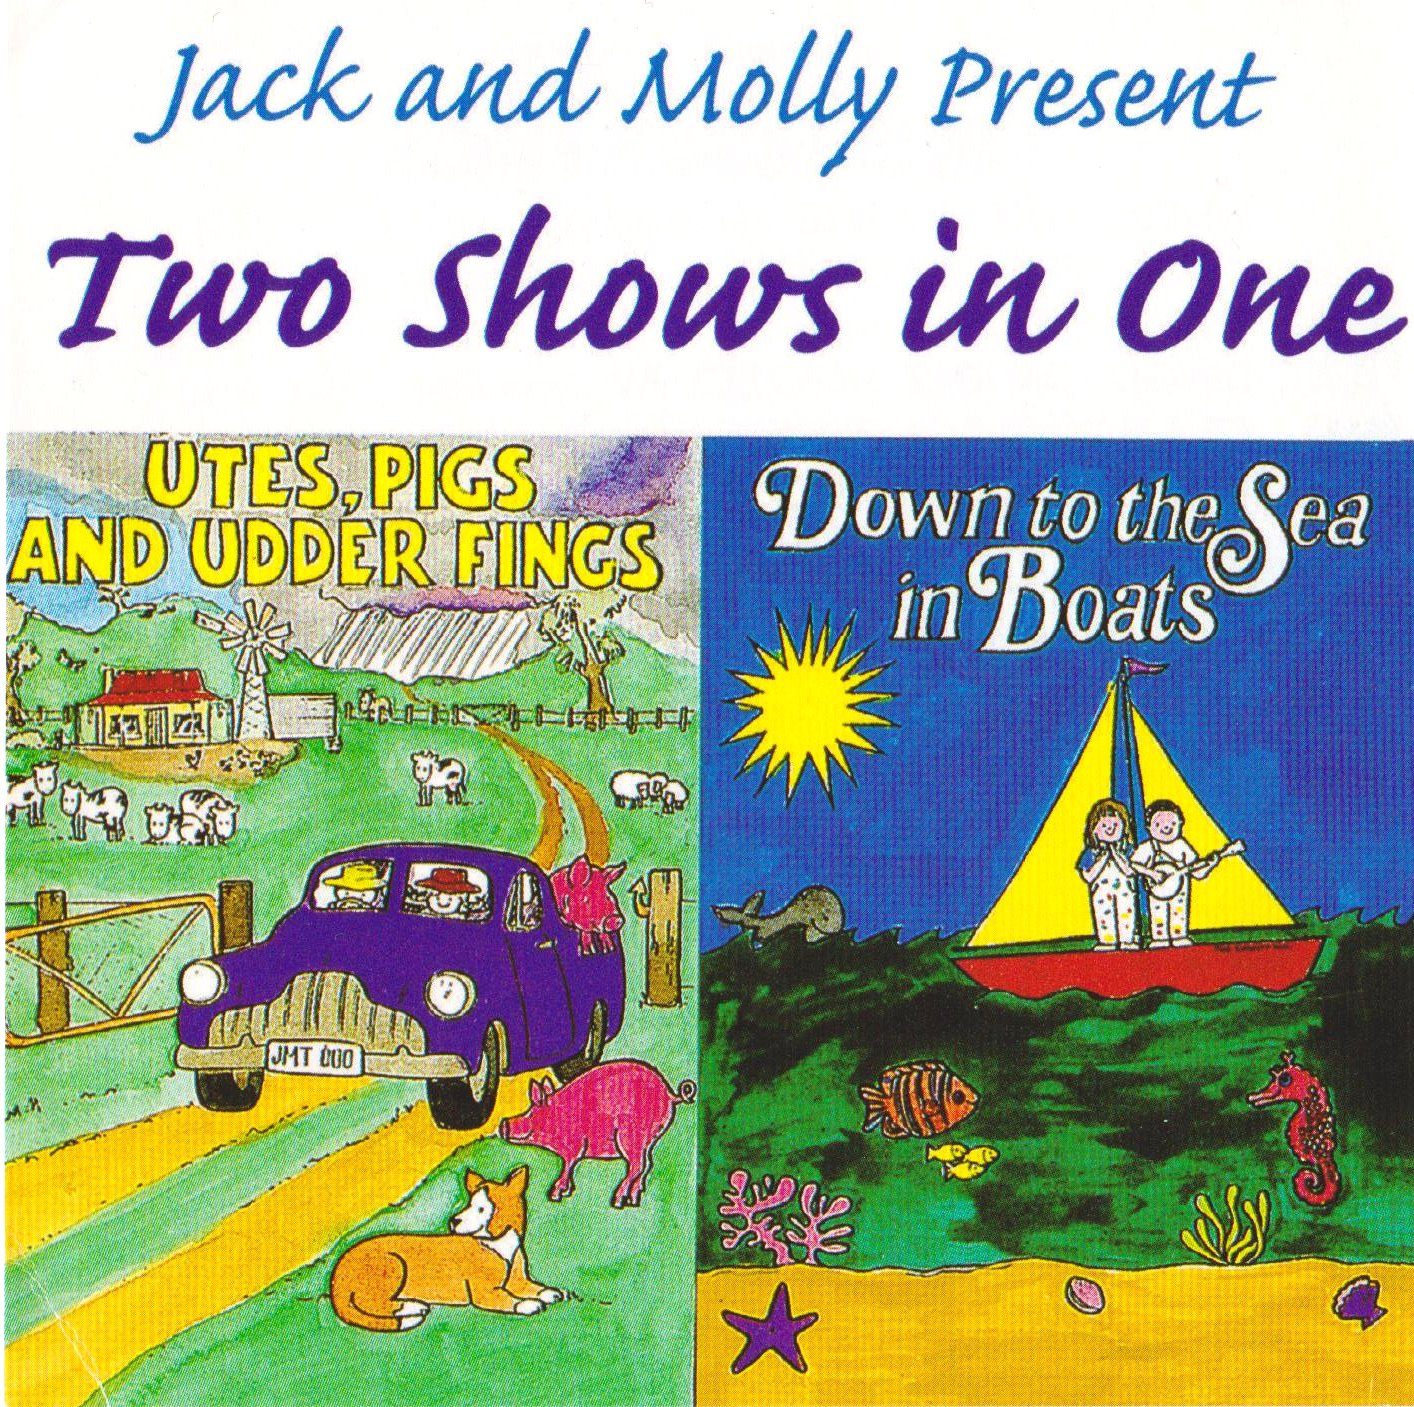 Two Shows in One